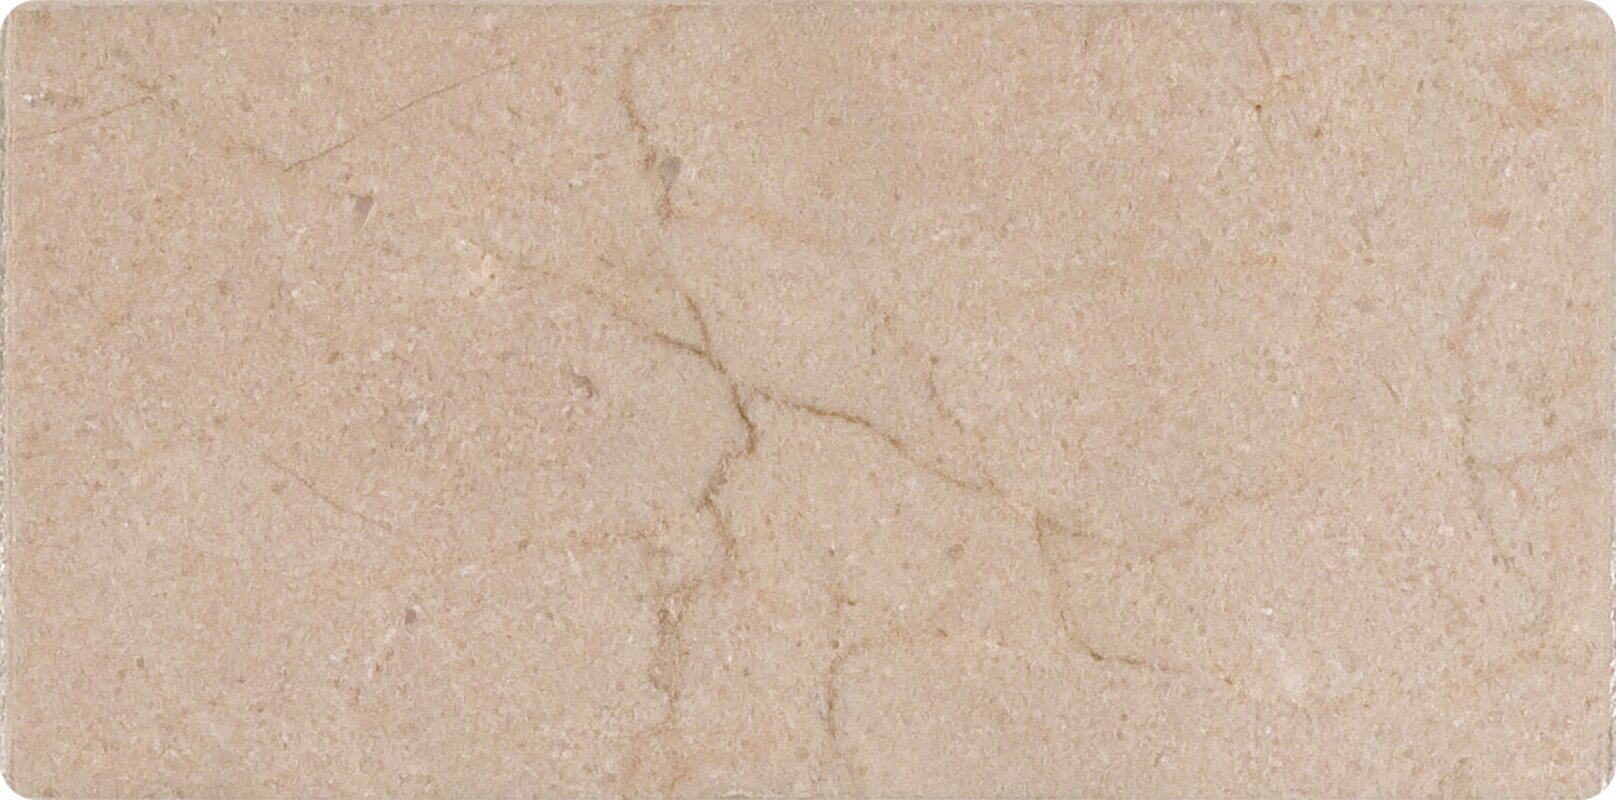 Msi 3 x 6 marble tile in honed cream reviews wayfair 3 x 6 marble tile in honed cream dailygadgetfo Image collections